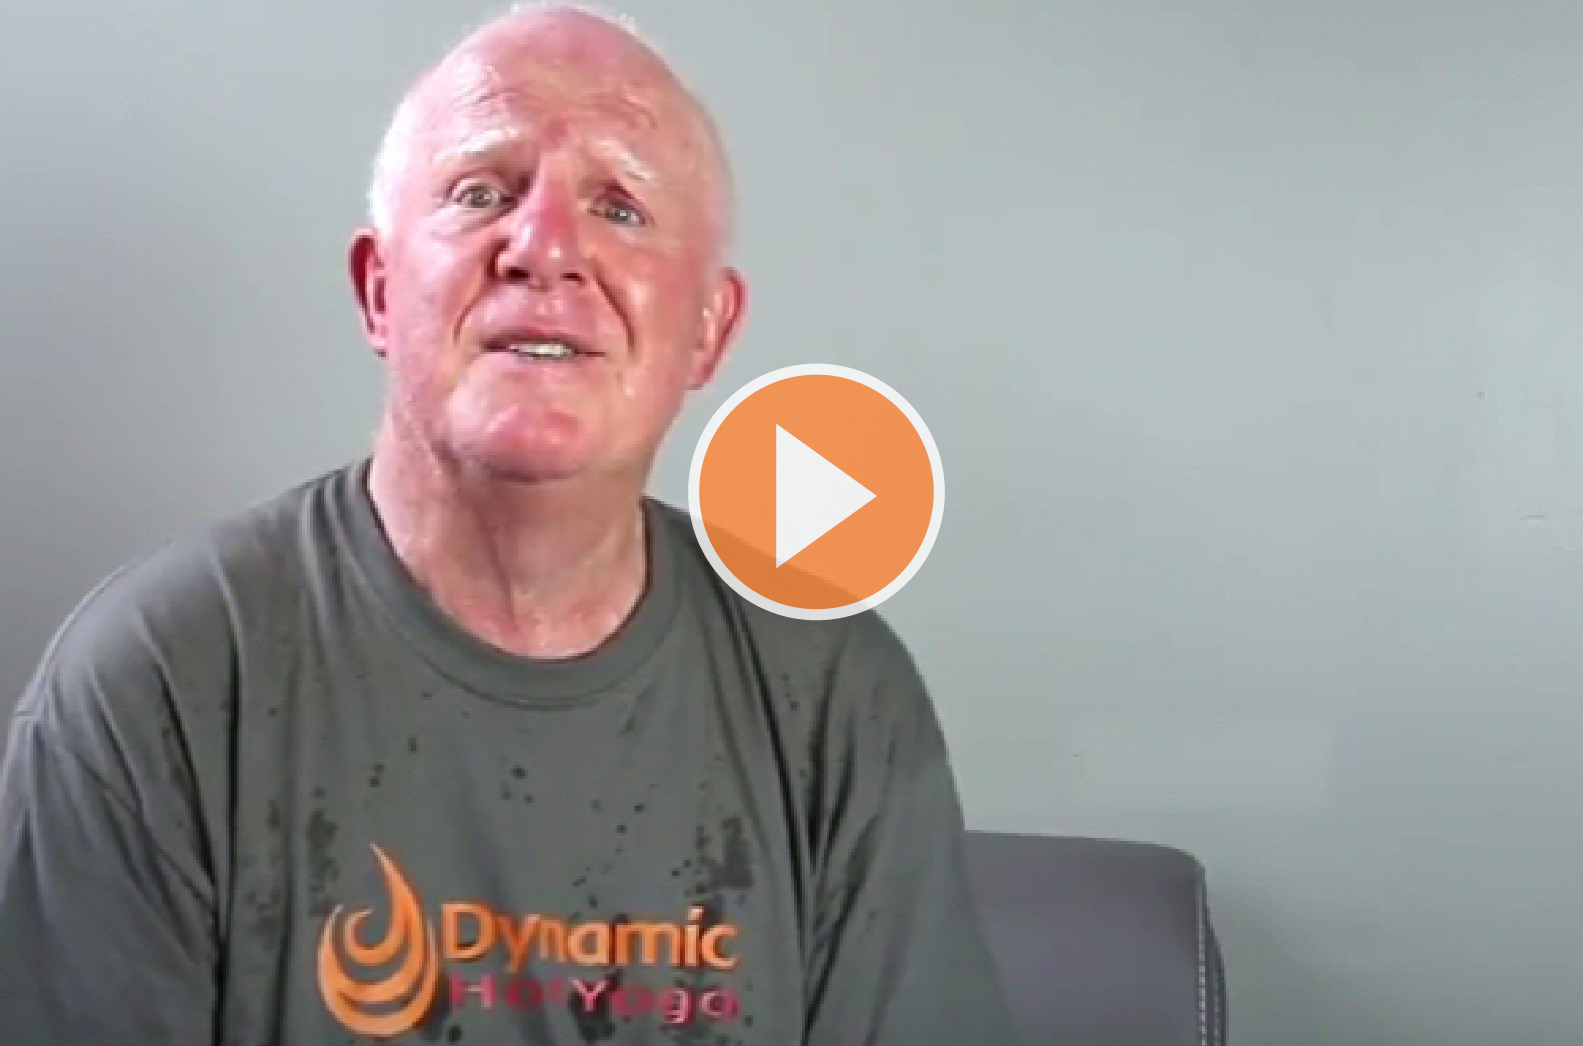 Dynamic Hot Yoga Testimonial by Geoff